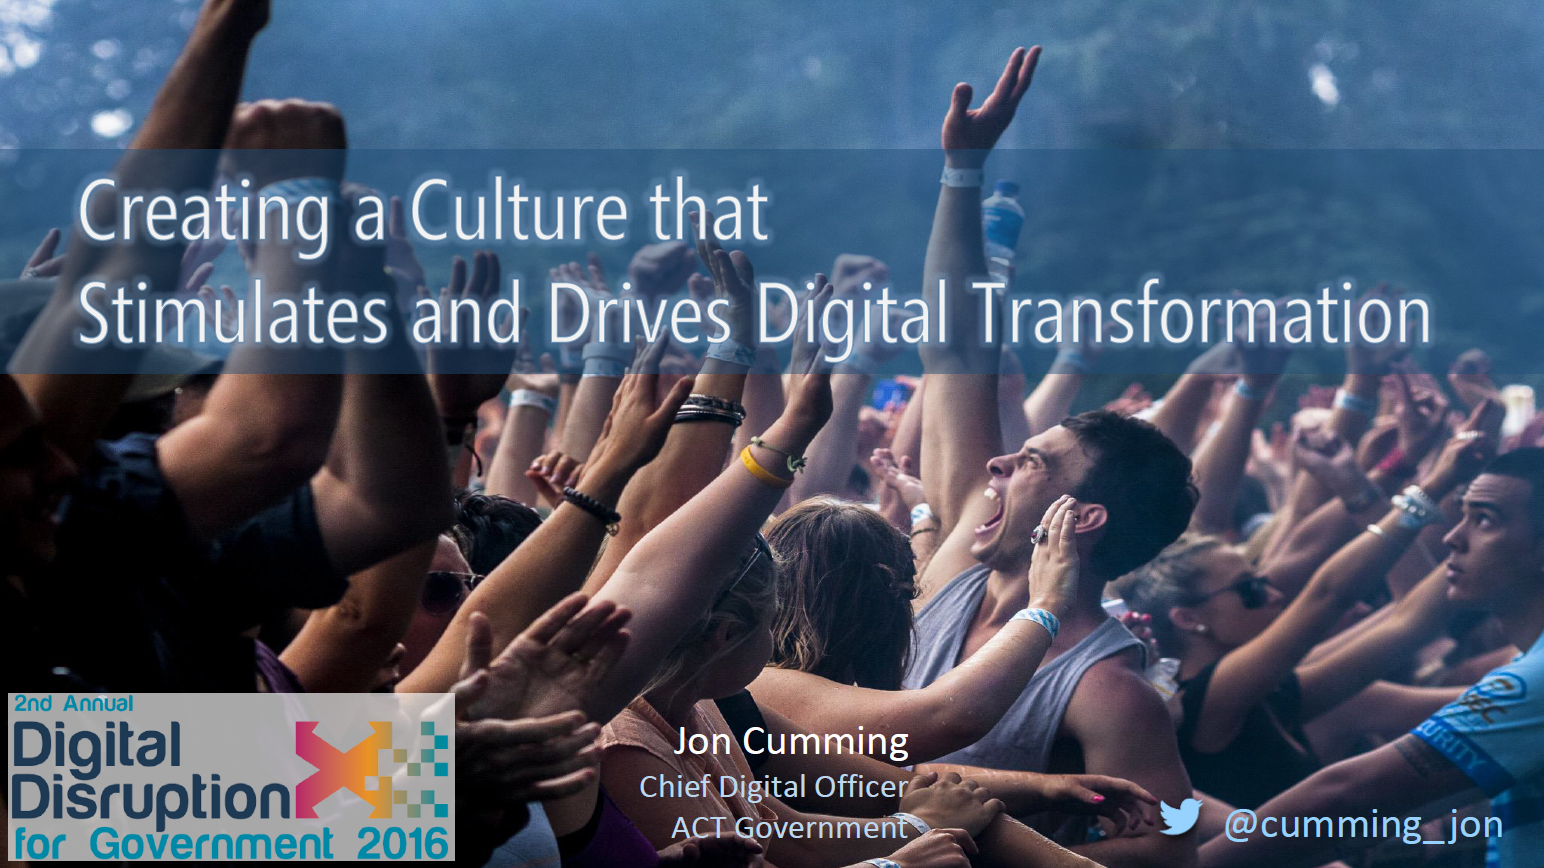 Creating a Culture that Stimulates and Drives Digital Transformation